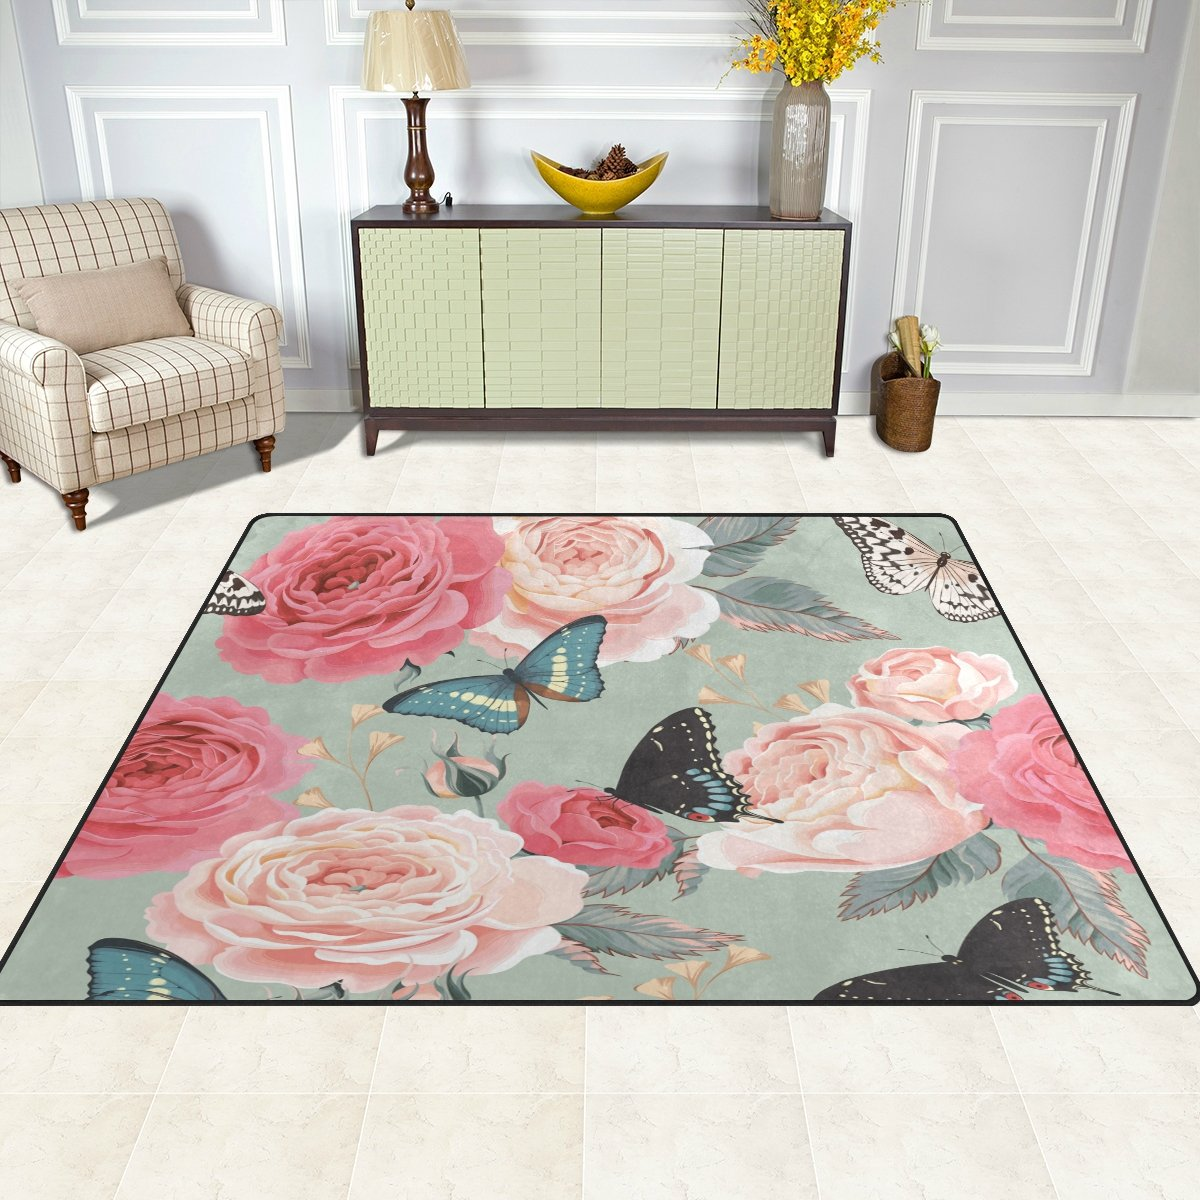 Area Rug, Butterfly Rose Flower Print Carpet Super Soft Polyester Large Non-Slip Modern Bath Mats for Bedroom Living Room Hall Dinner Table Home Decor 48 x 63 inch FFY GO